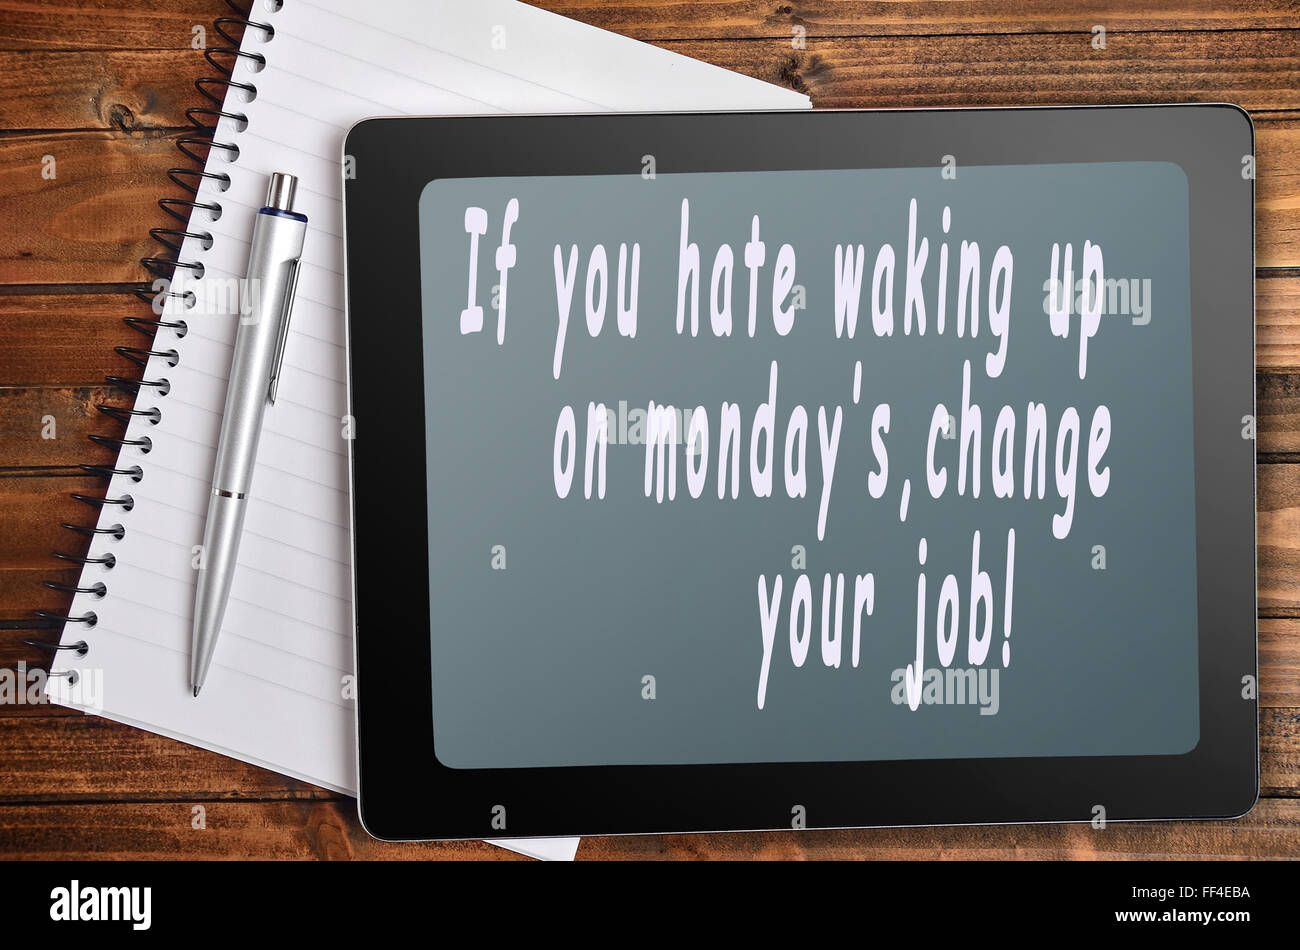 Hate monday's words on digital tablet - Stock Image